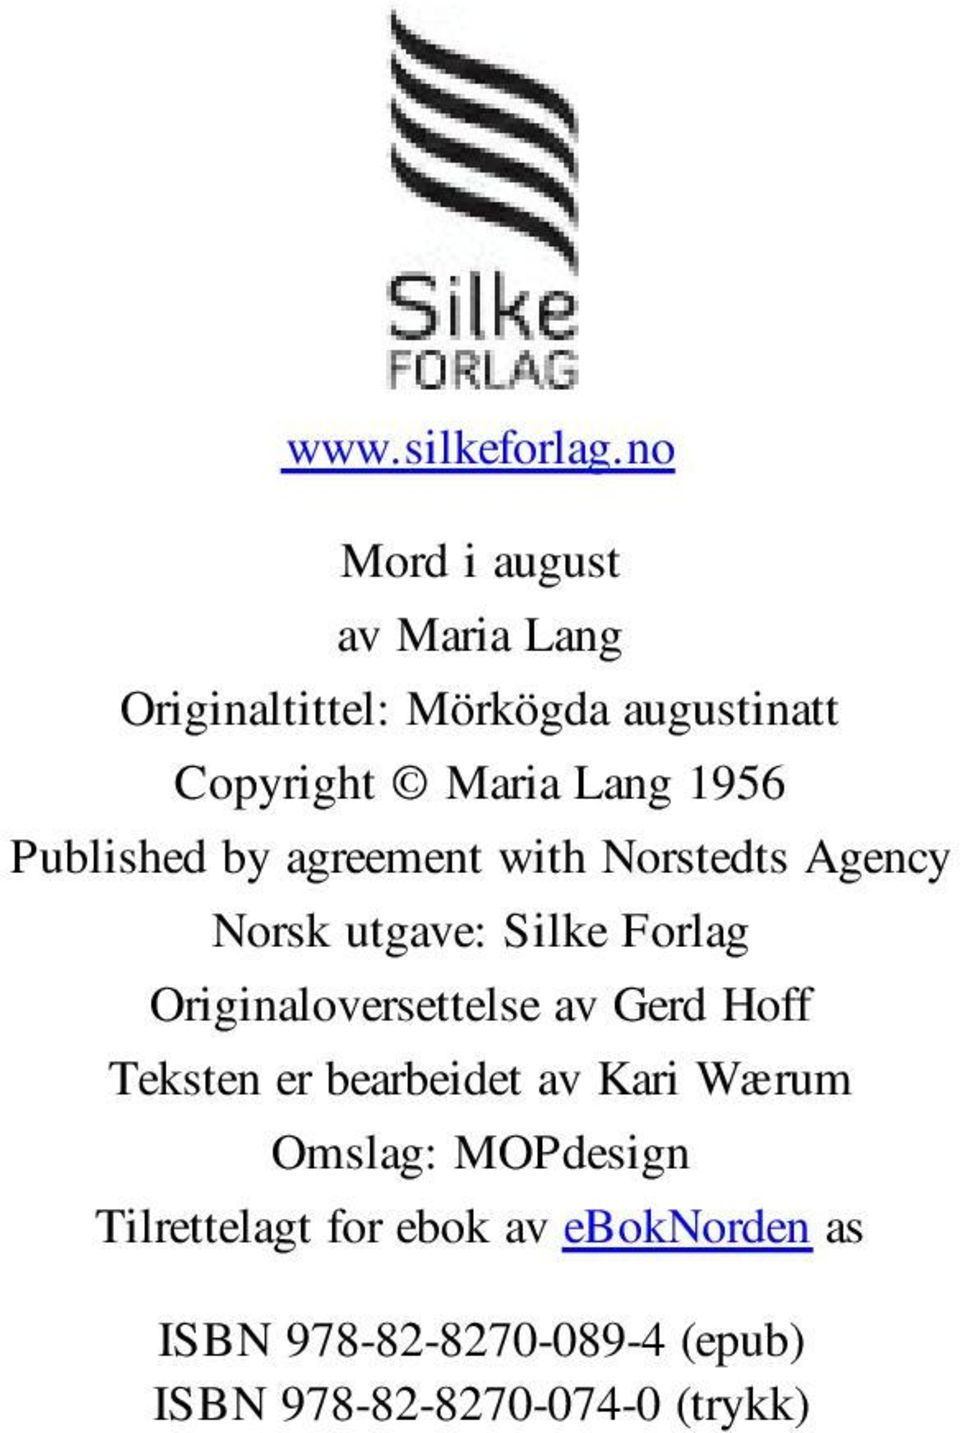 1956 Published by agreement with Norstedts Agency Norsk utgave: Silke Forlag